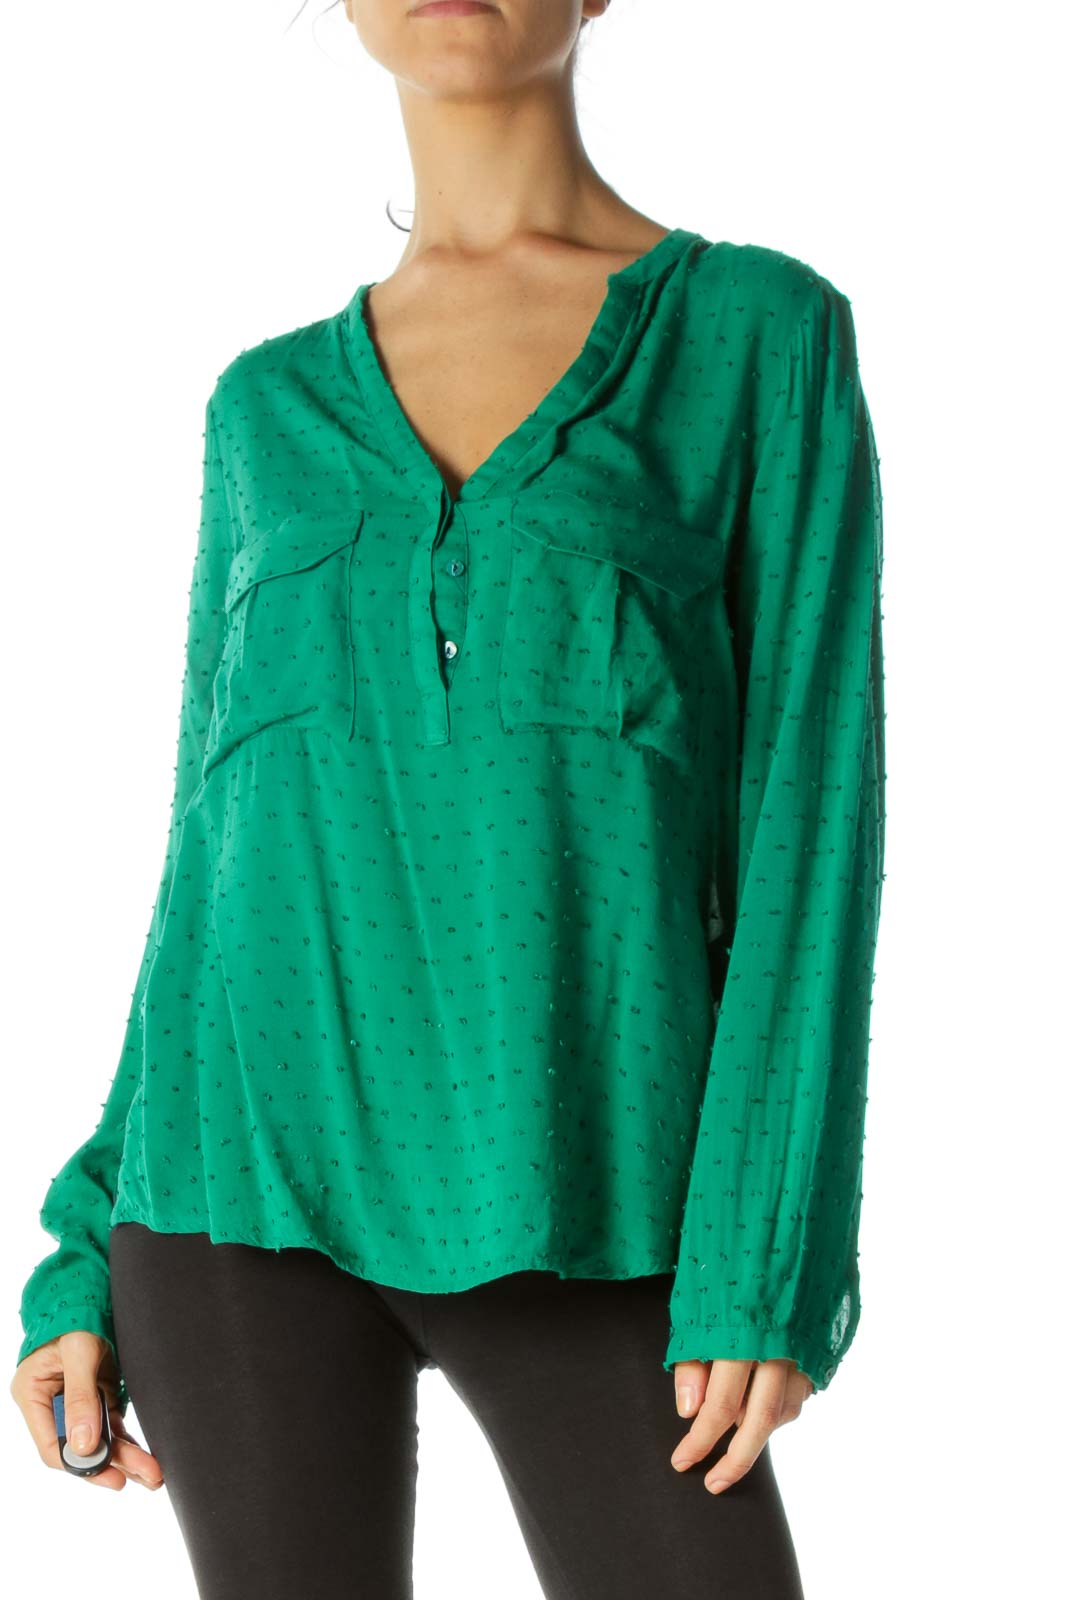 Emerald Green Textured Long Sleeve Blouse